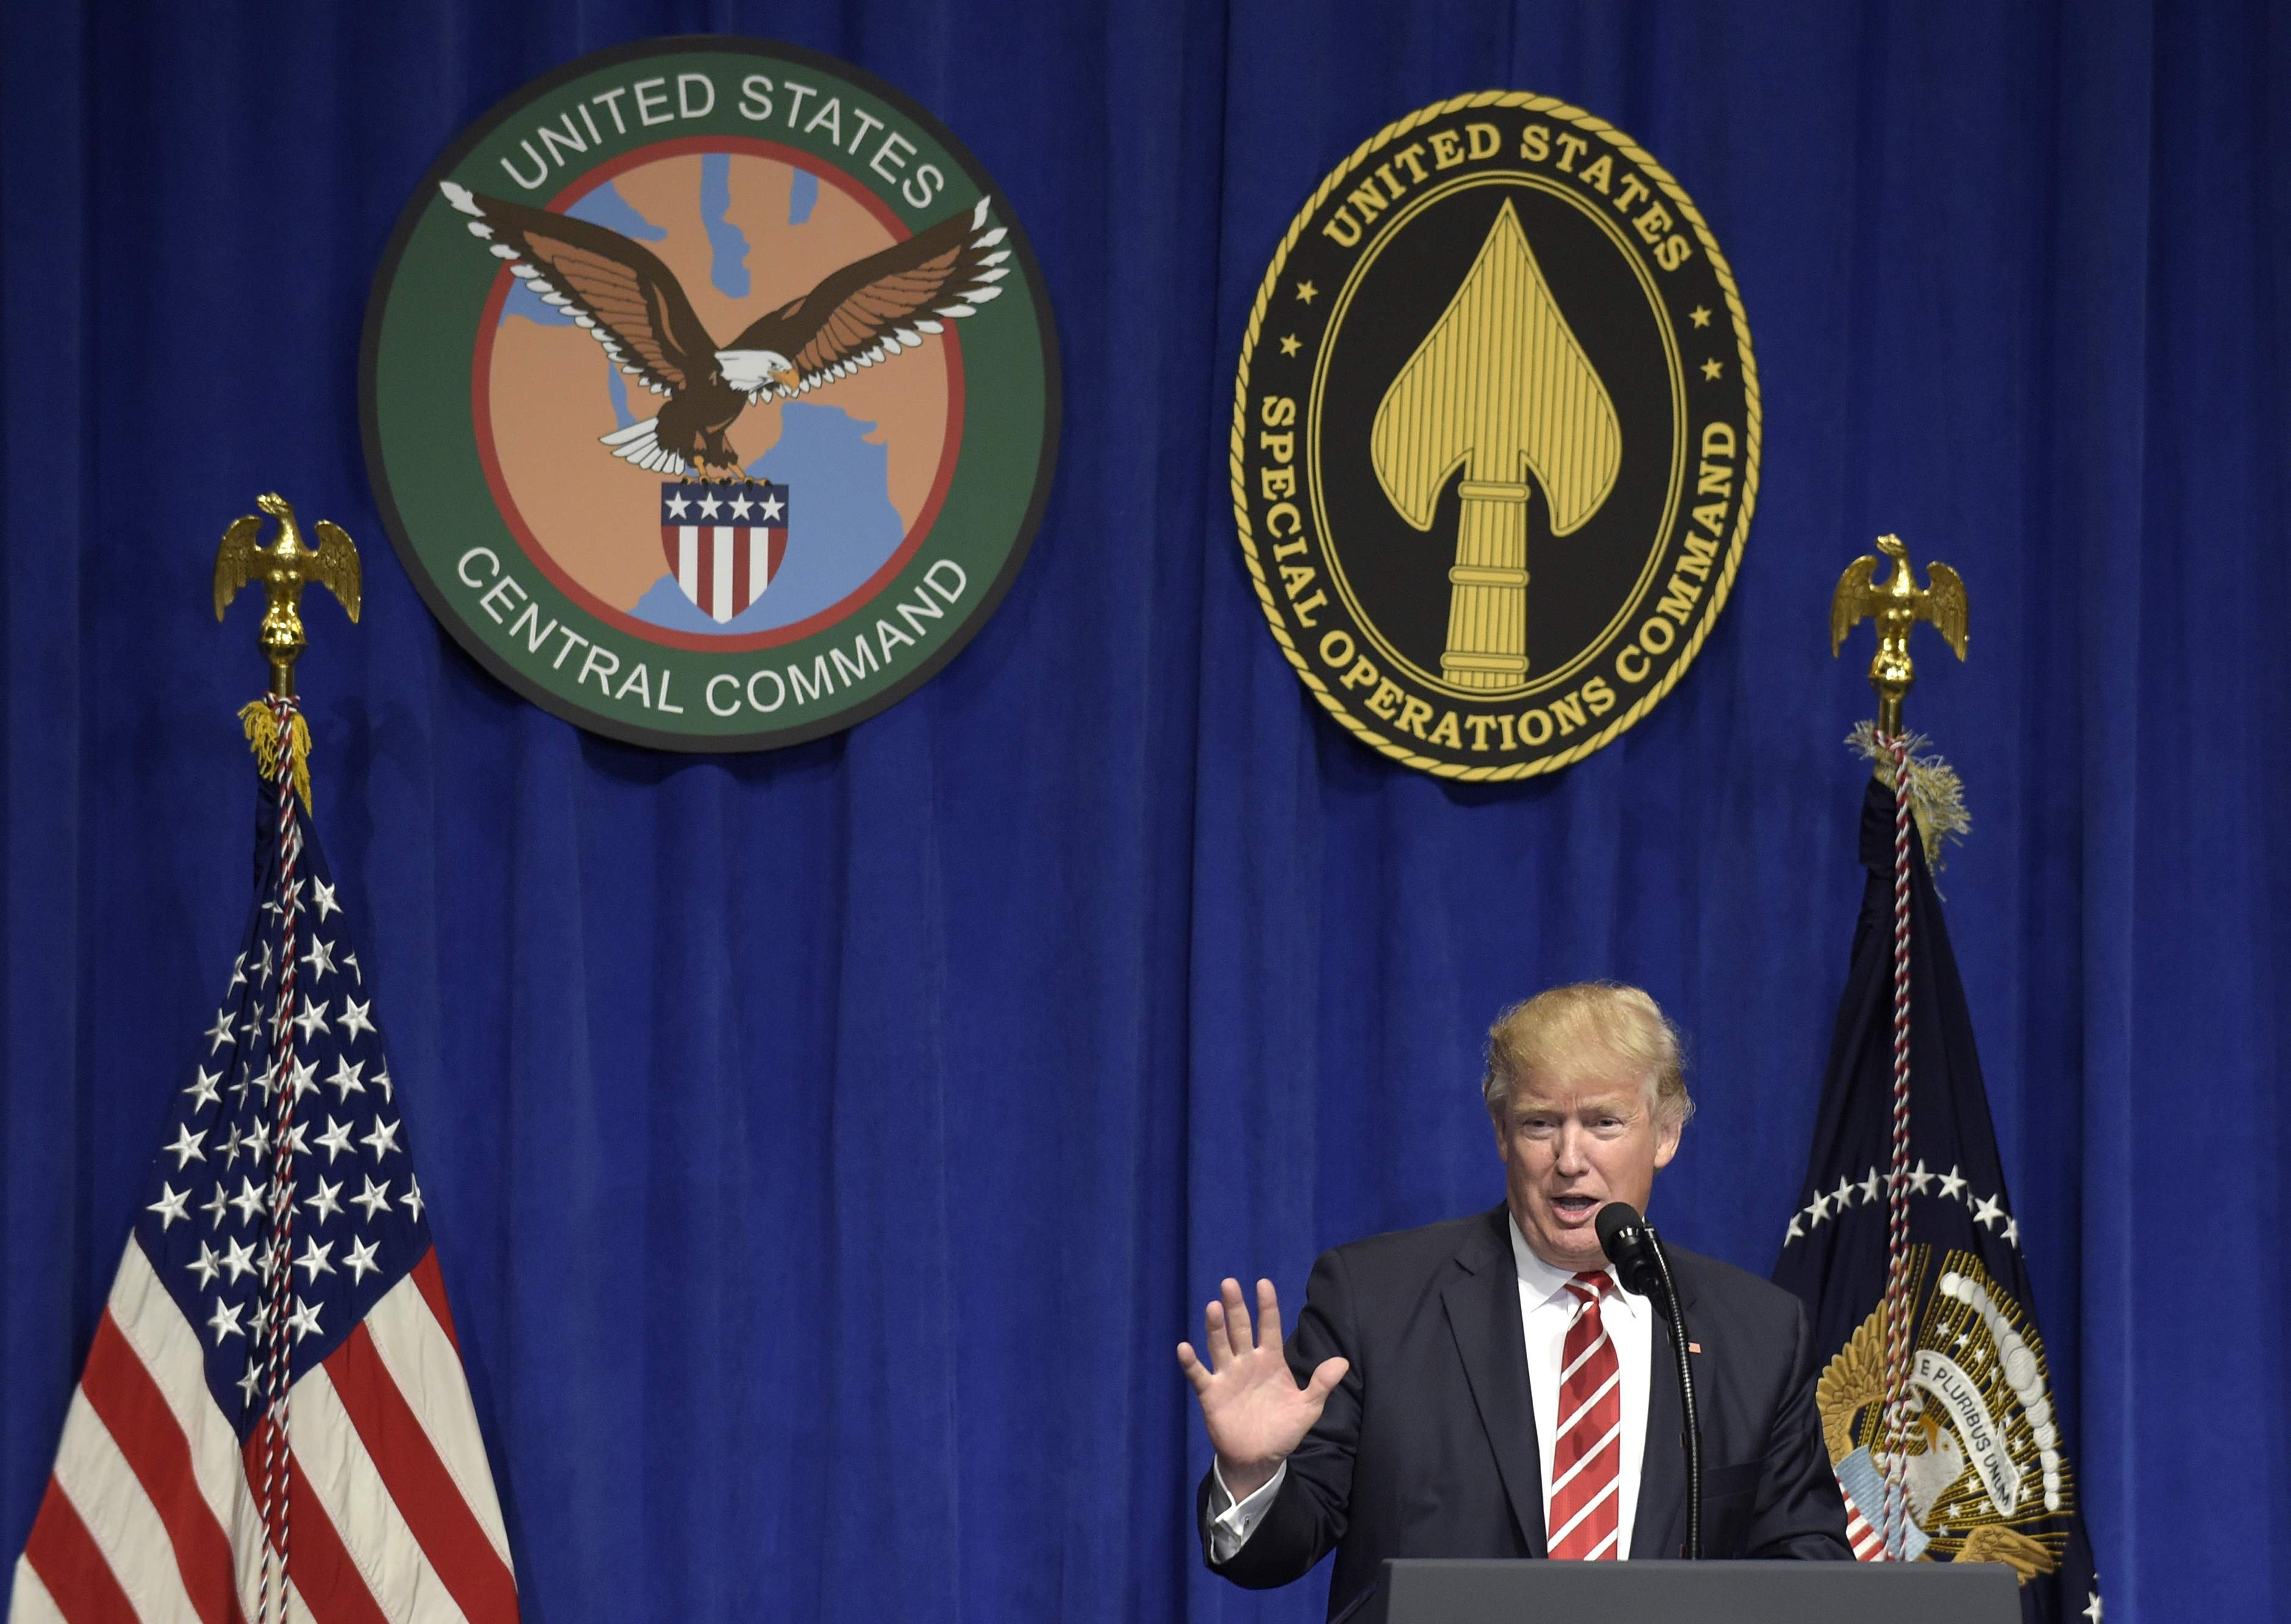 DAY 18 - In this Feb. 6, 2017, file photo, President Donald Trump speaks to troops while visiting U.S. Central Command and U.S. Special Operations Command at MacDill Air Force Base in Tampa, Fla. (AP Photo/Susan Walsh, file)